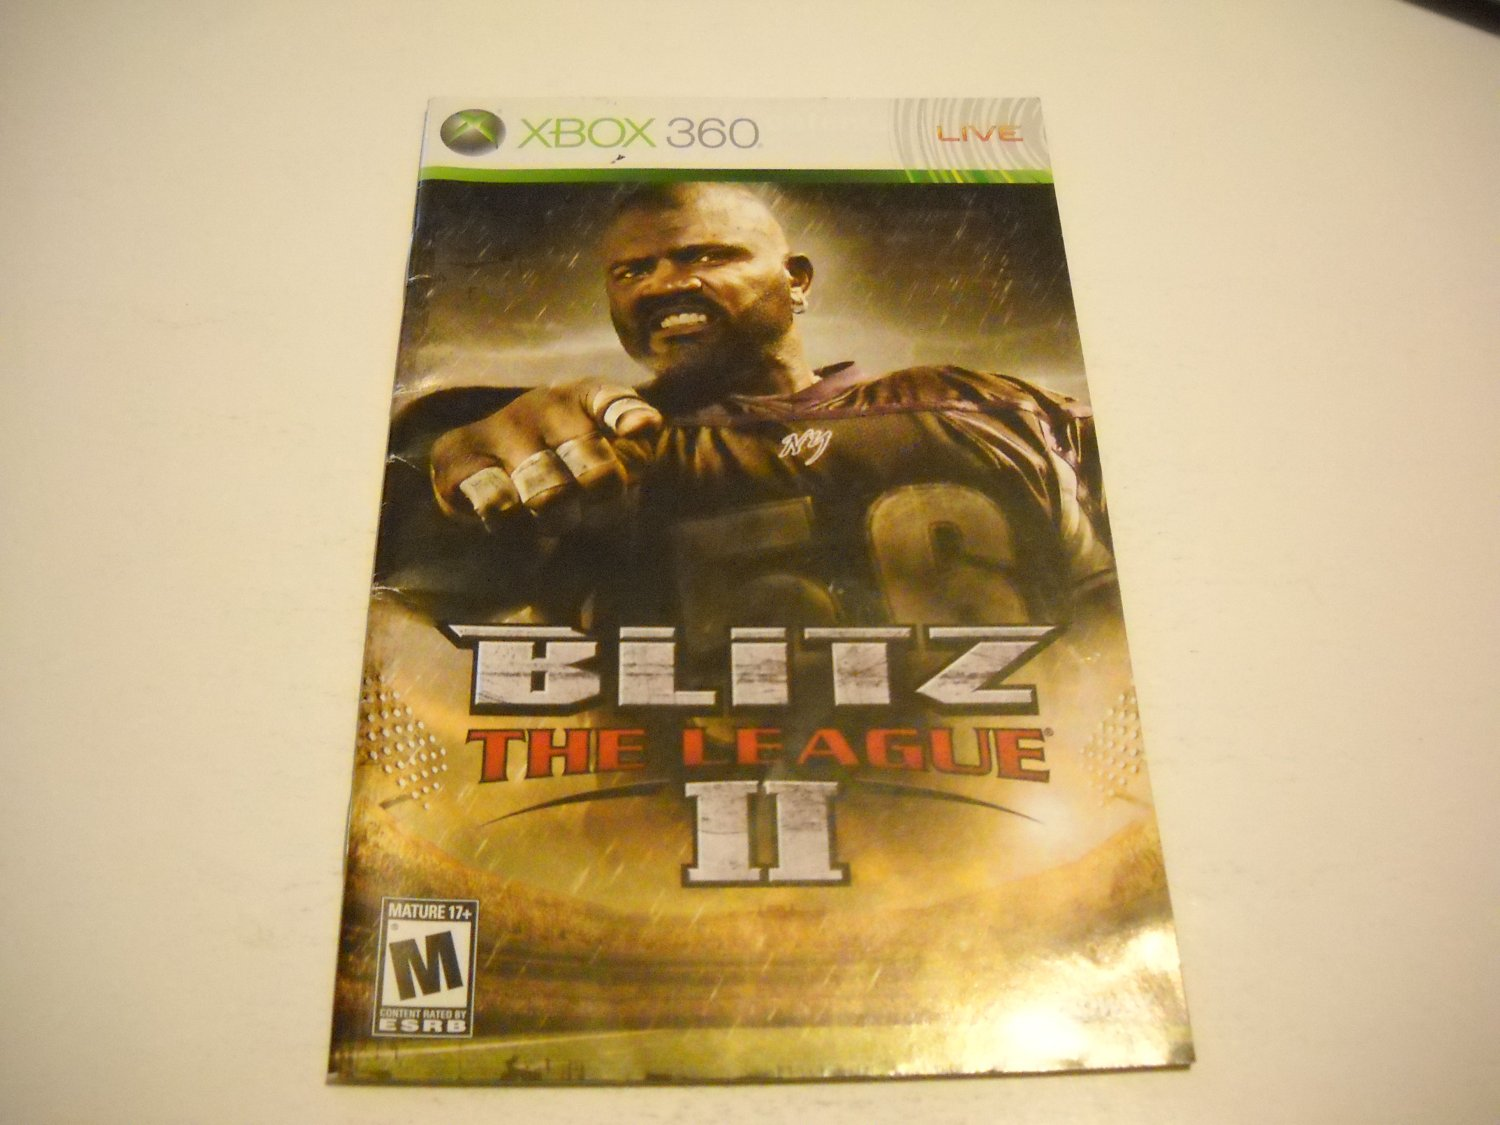 Manual ONLY ~  for Blitz the League II / 2   - Xbox 360 Instruction Booklet